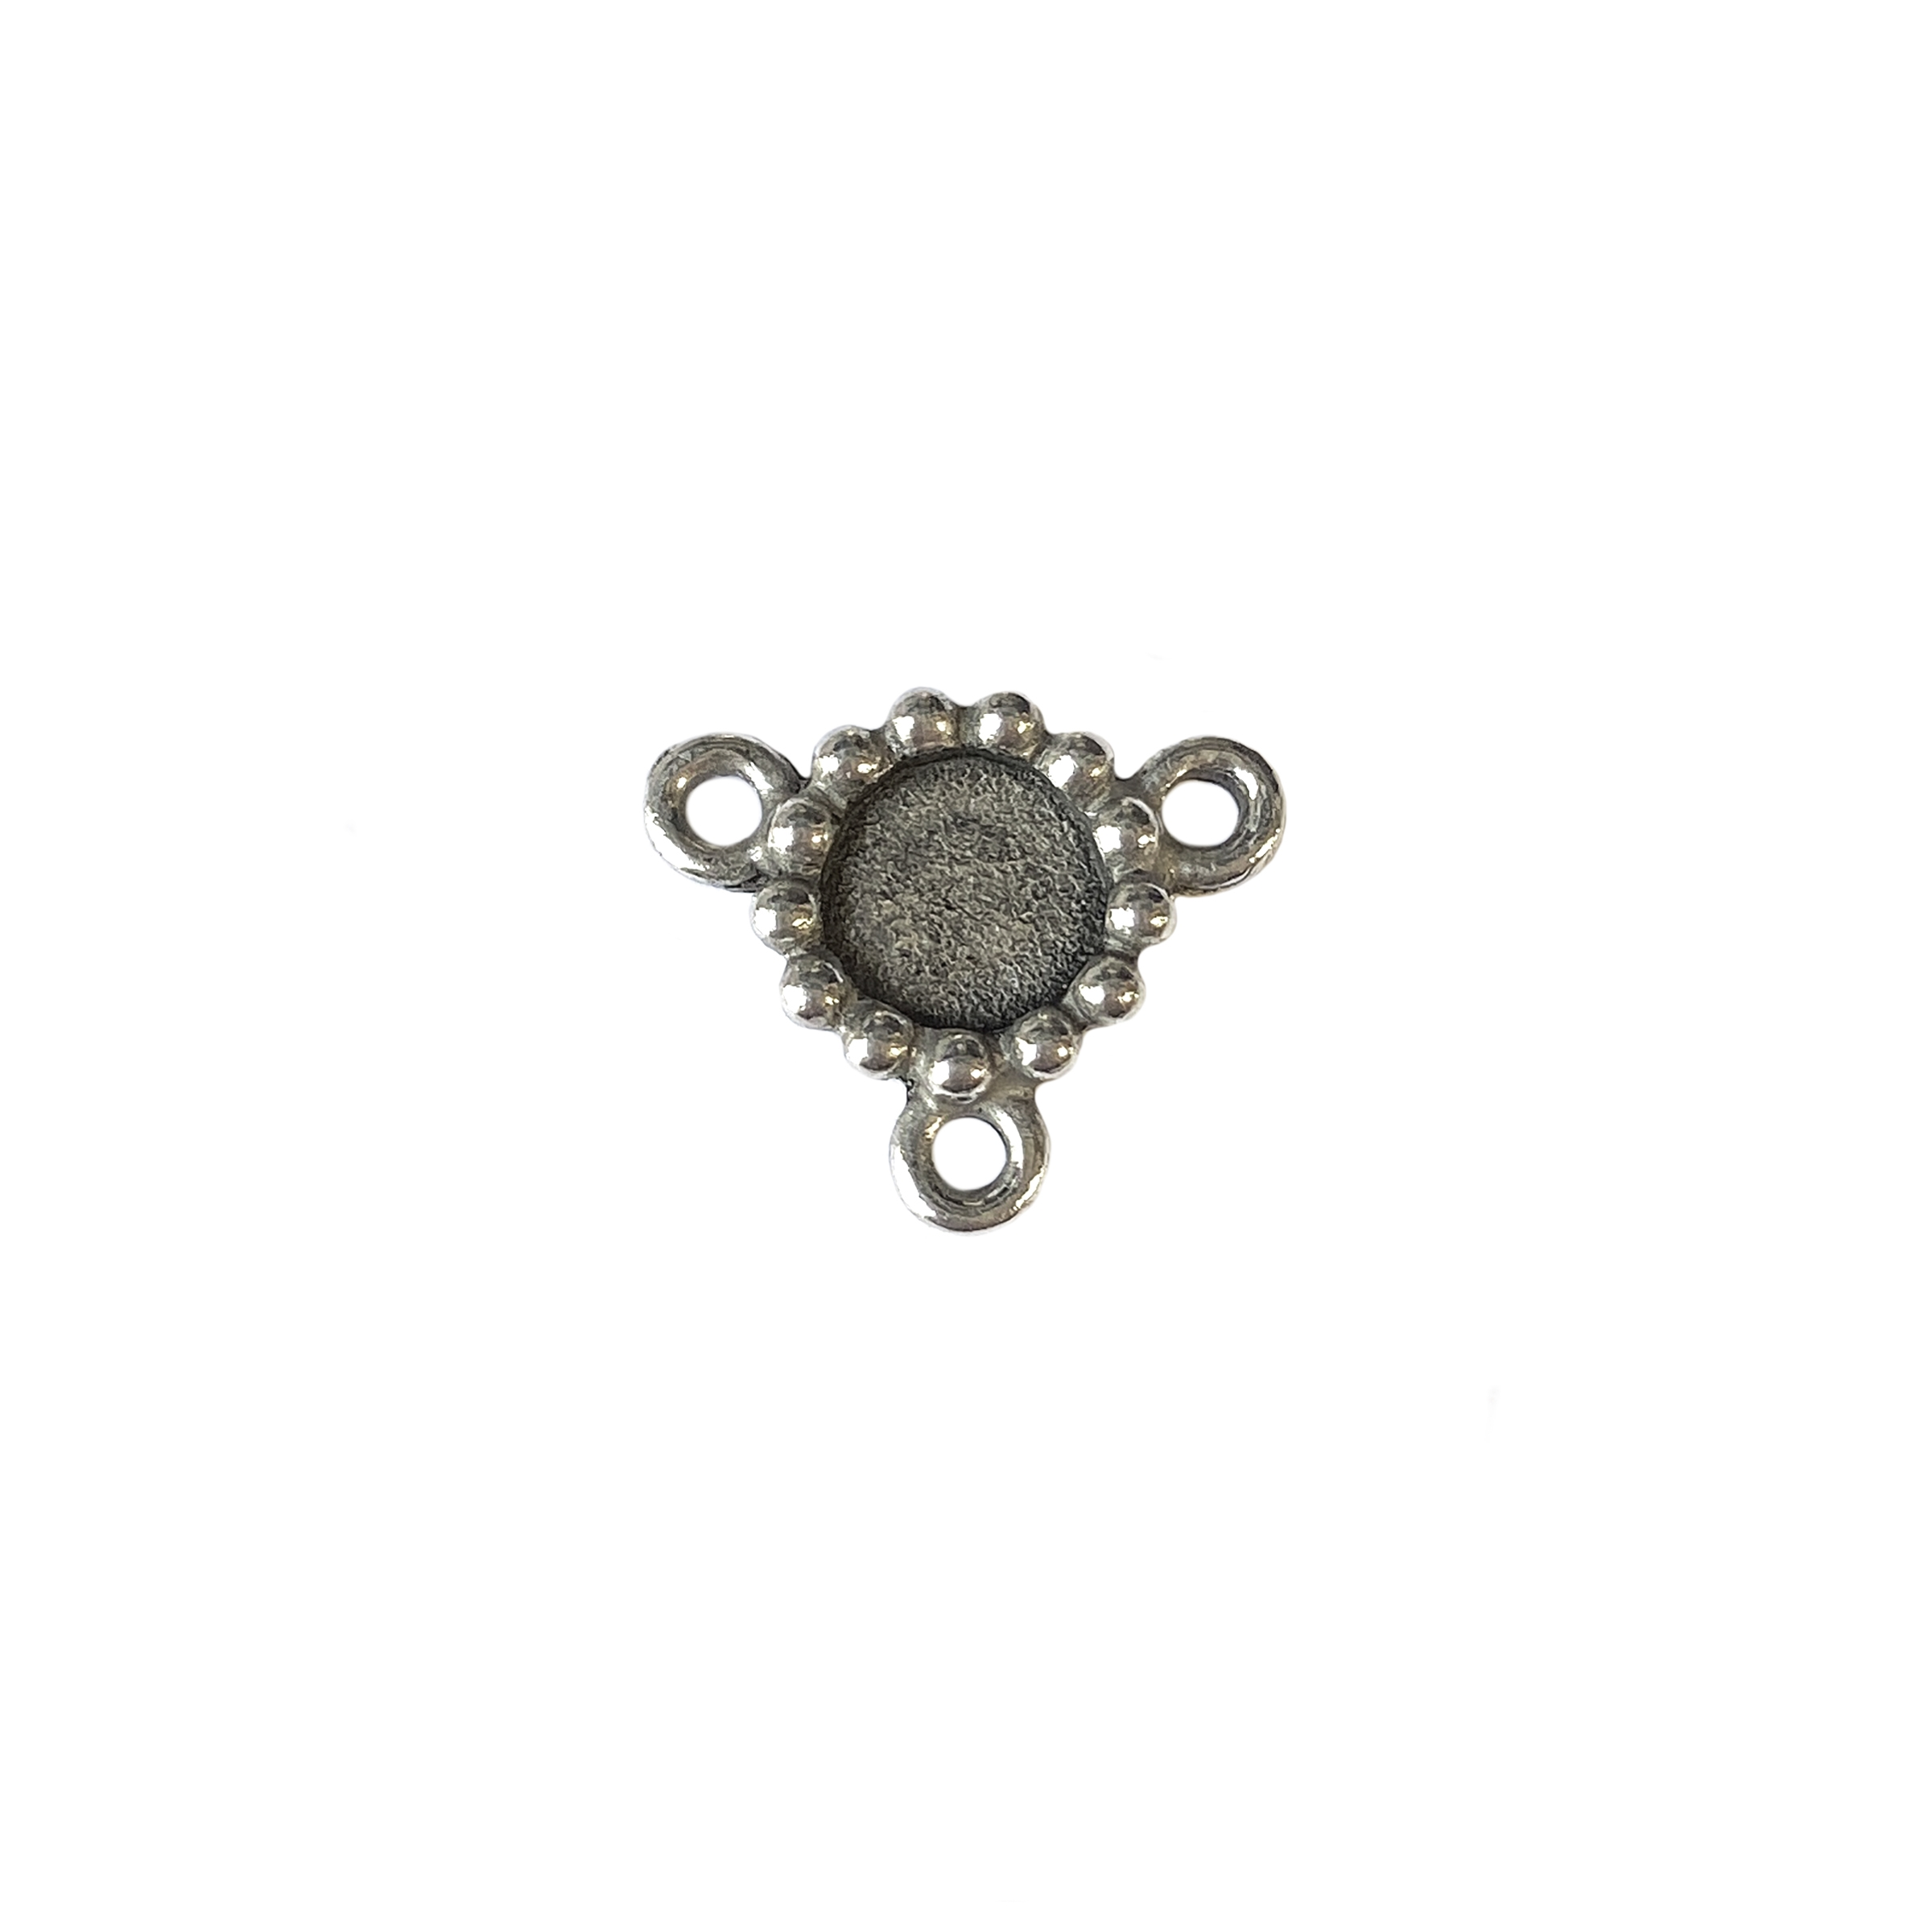 old silver, jewelry connector, 09760, lead free pewter, B'sue by 1928, silver plated pewter, antique, vintage jewelry parts, pewter jewelry parts, nickel free finish, made in the USA, 1928 Company, designer jewelry, B'sue Boutiques